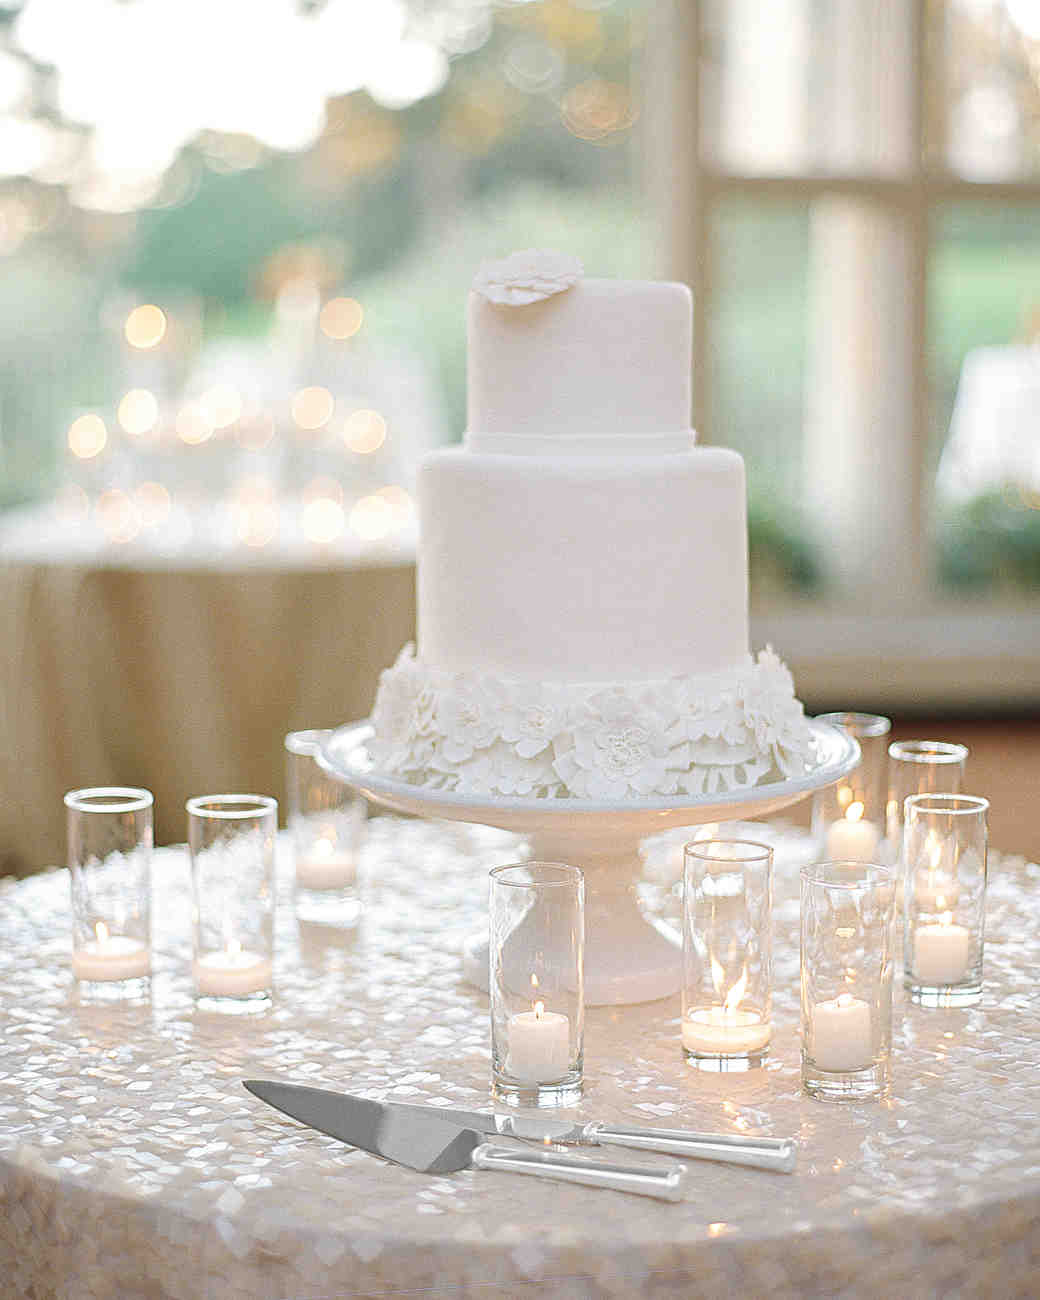 wedding-cake-votive-candle-elizabeth-messina-021-mwds110806.jpg